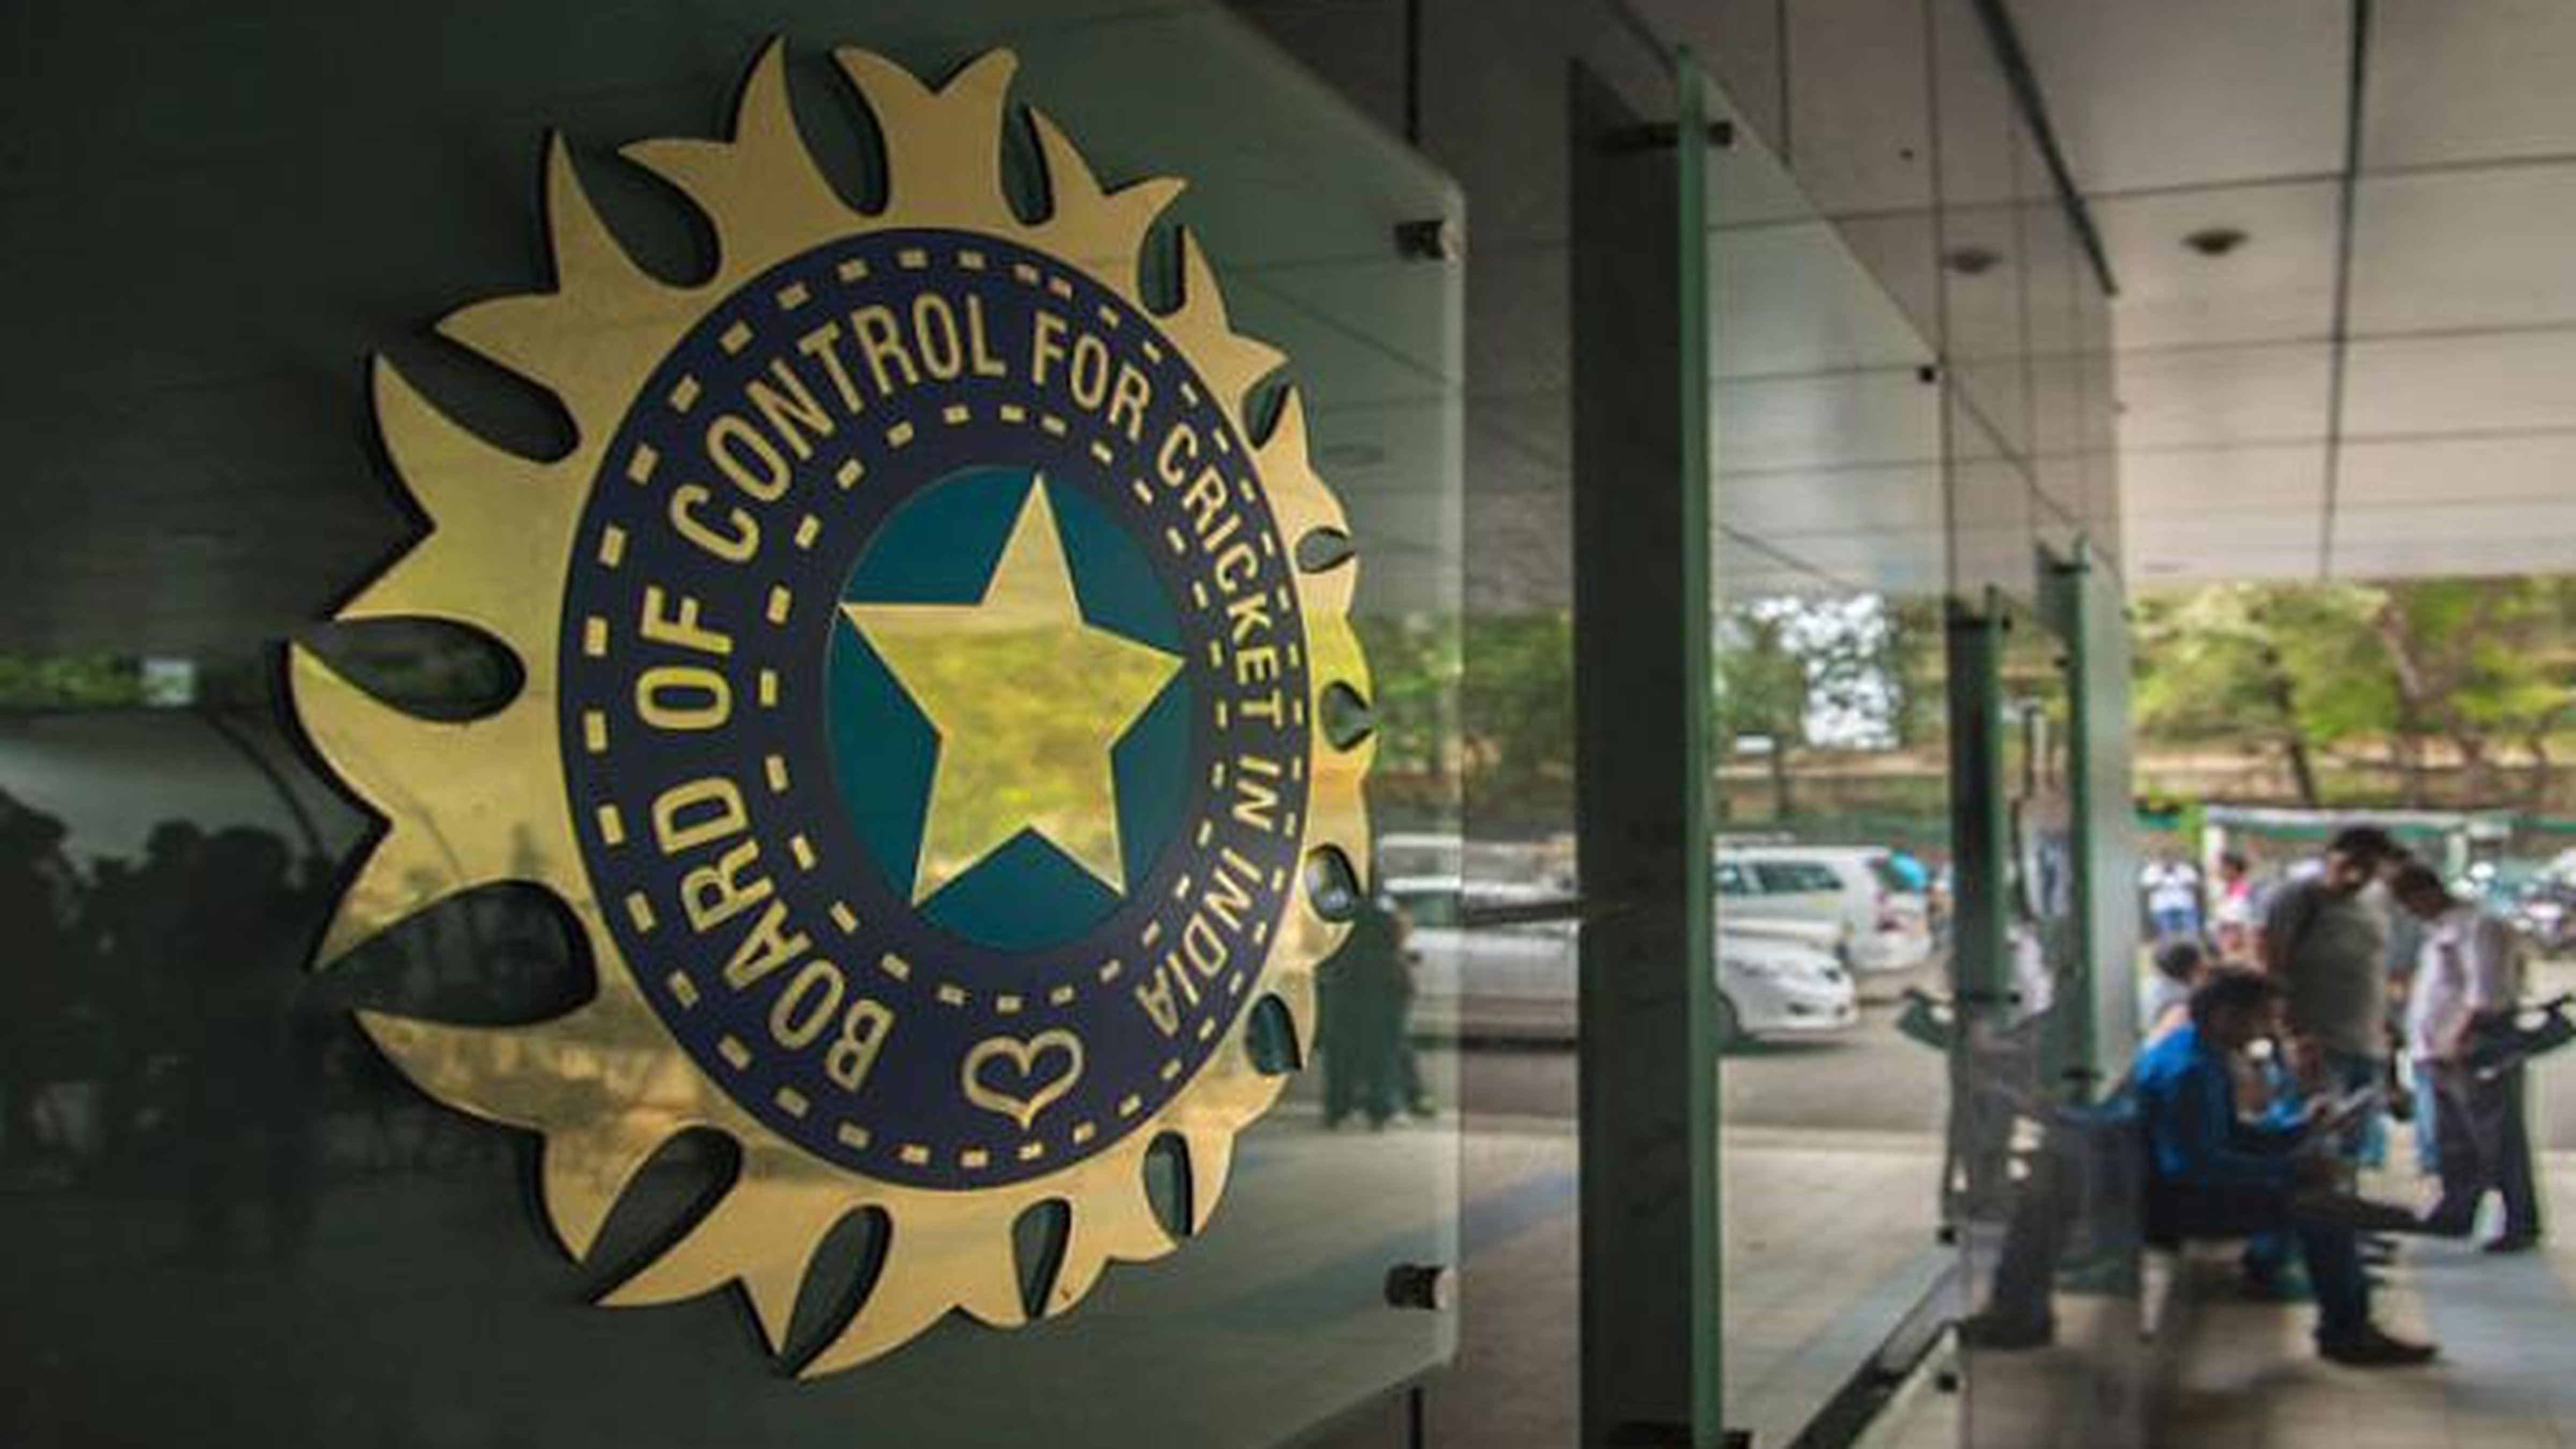 Calls for the Board of Control for Cricket in India (BCCI) to play a leadership role as world cricket grapples with the pandemic and its devastating consequences.